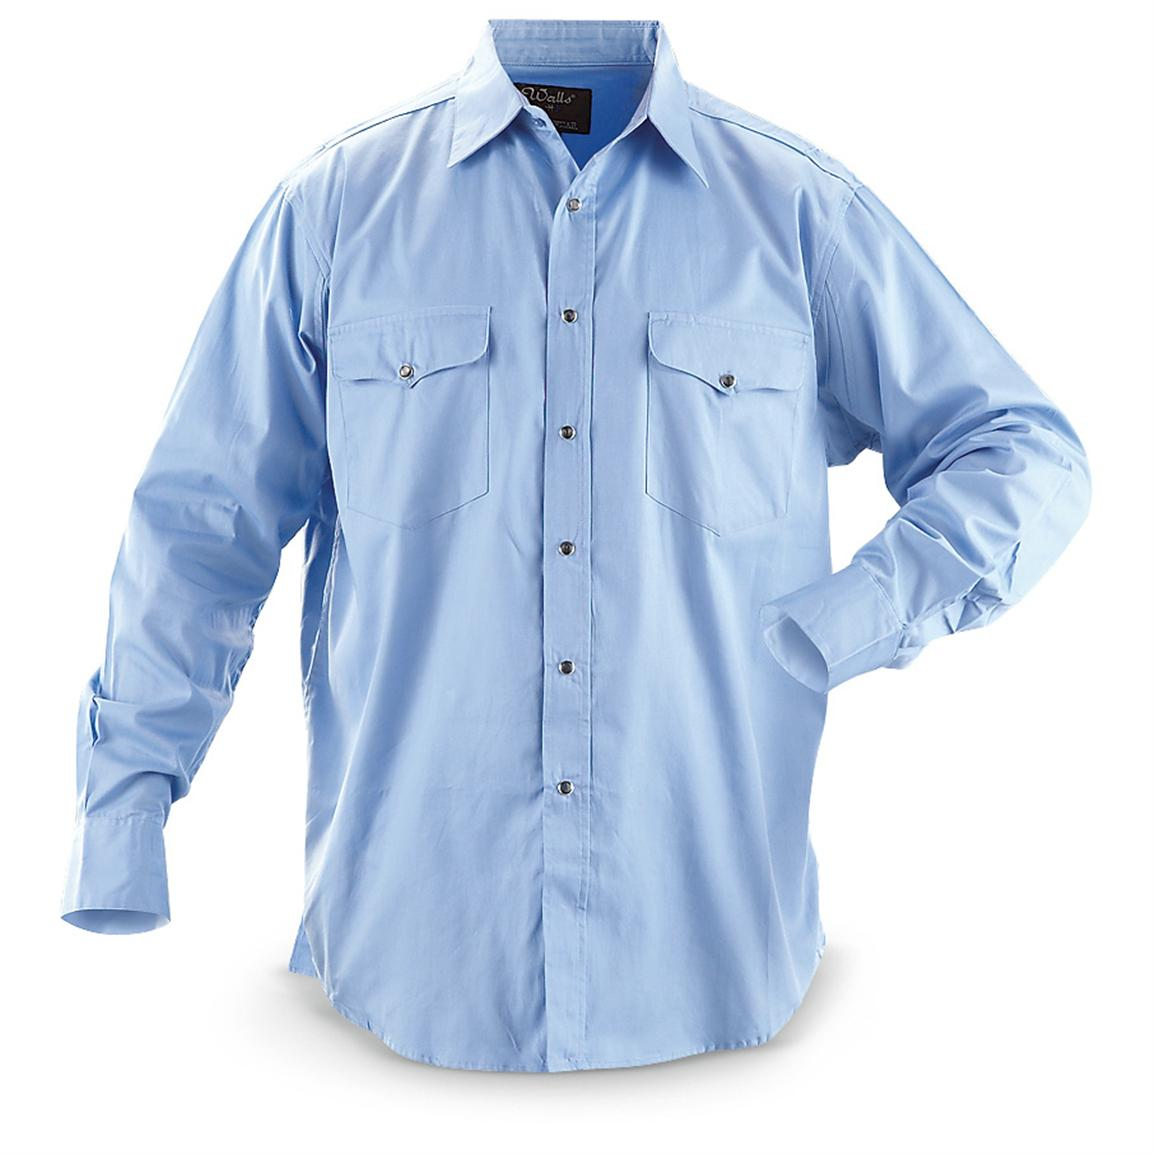 Walls® Performance Snap Work Shirt, Azure Blue